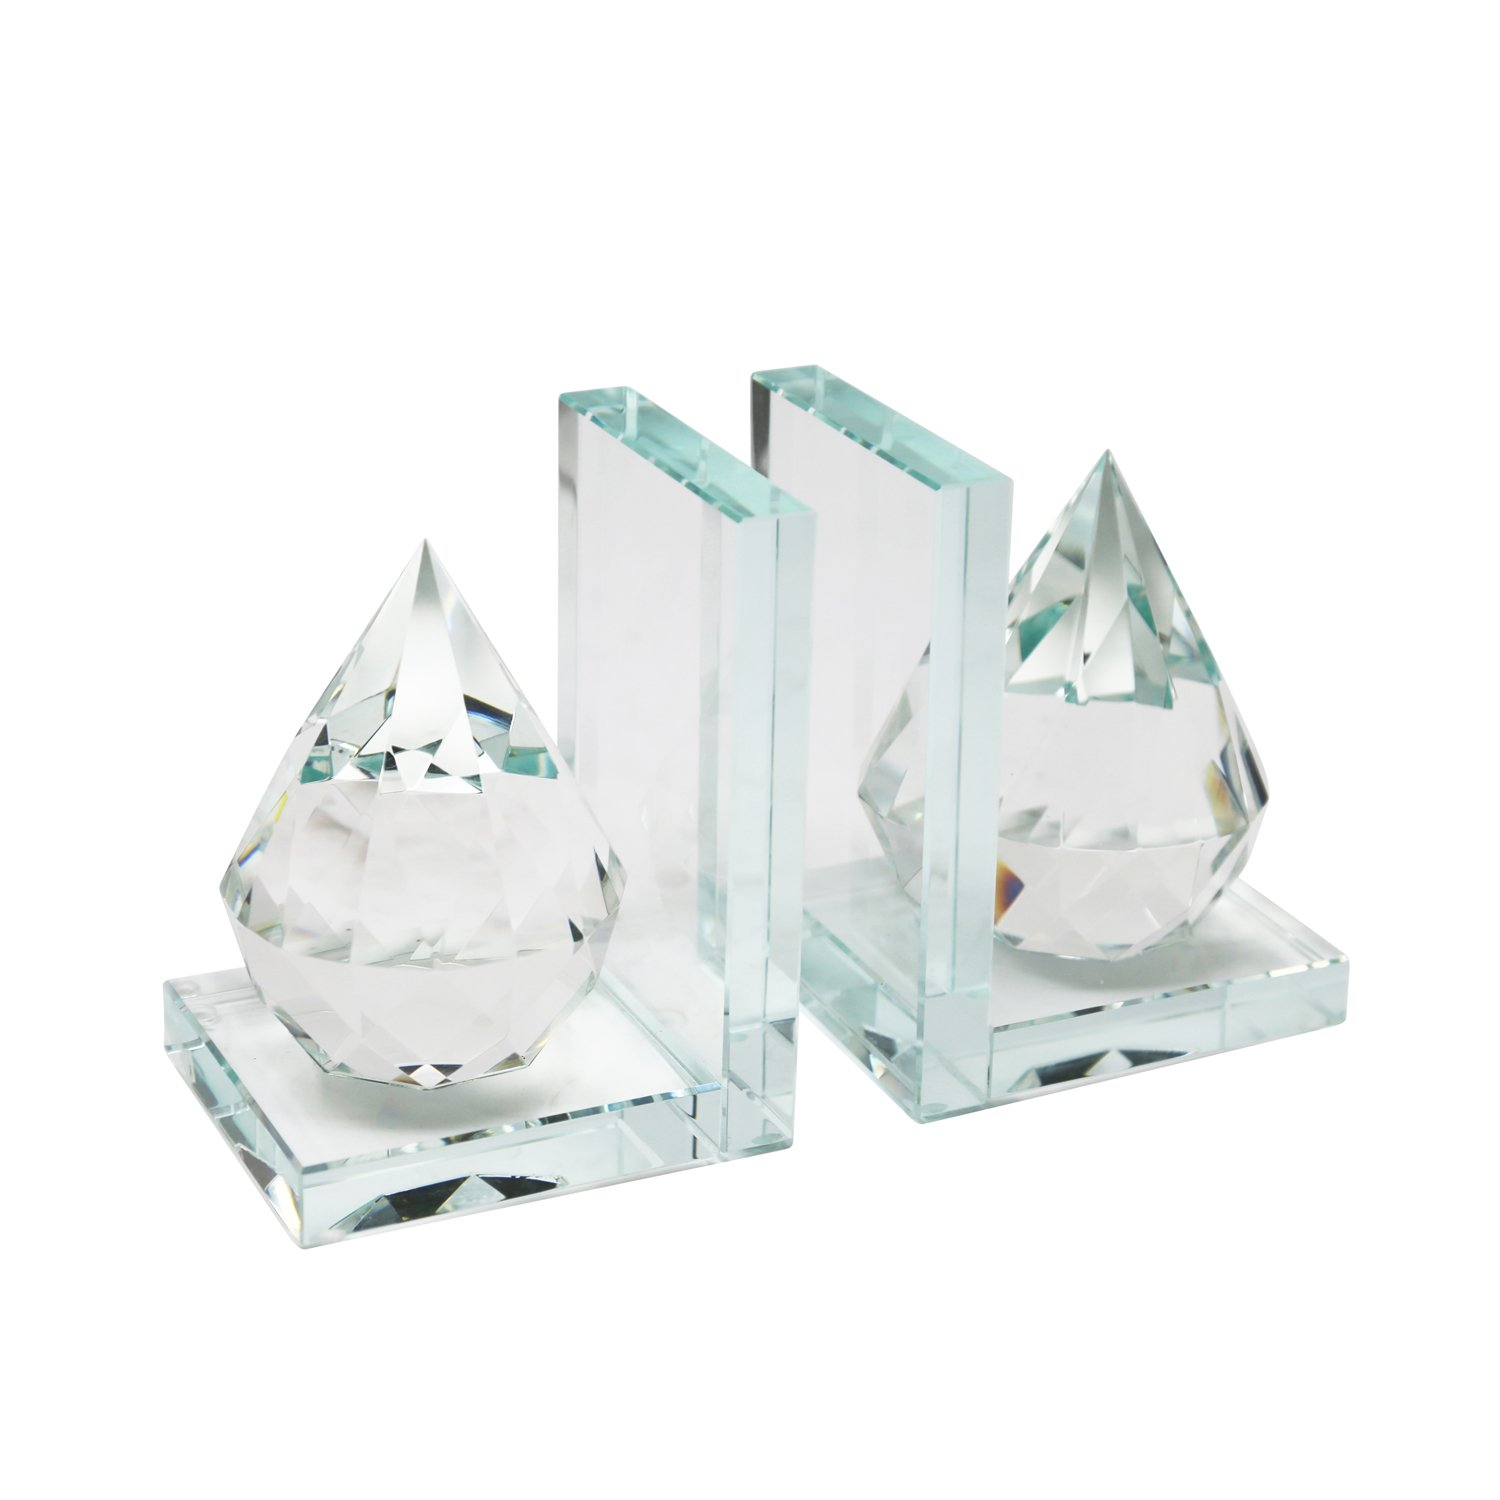 Sagebrook Home 13196-01 Crystal Bookend, 8'' x 4.5'' x 6'', Clear